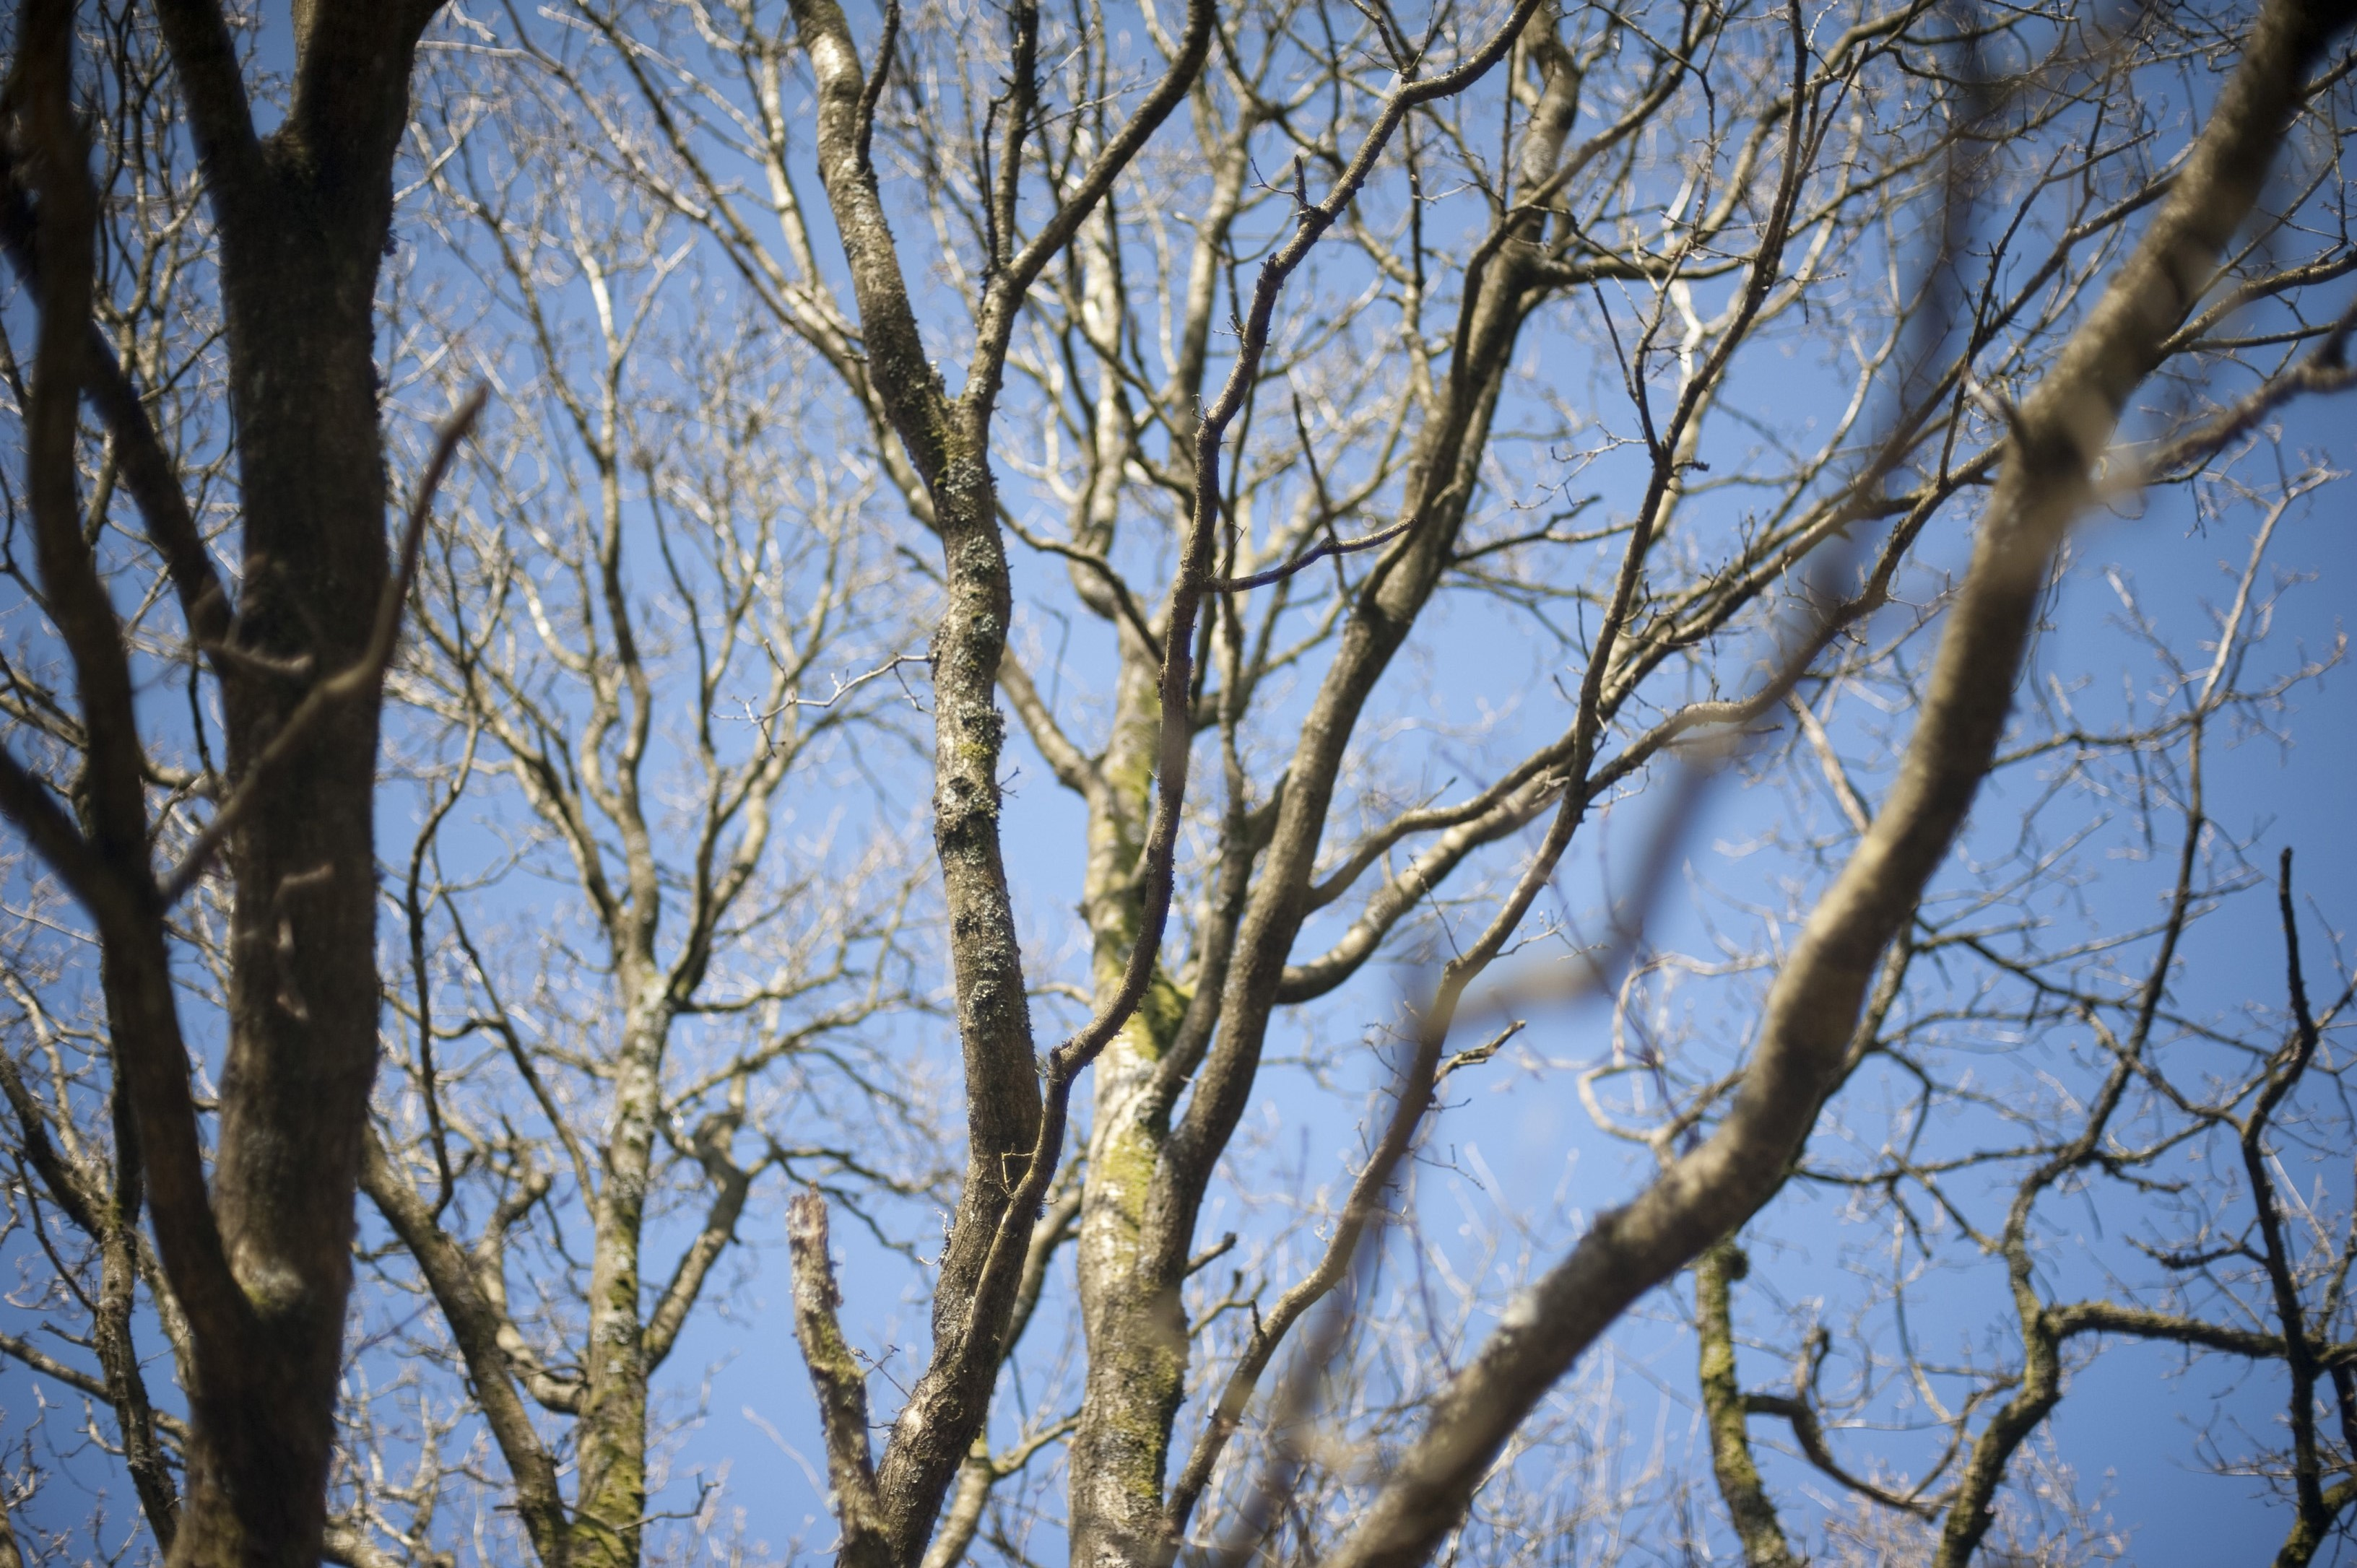 Bare branches of a majestic old deciduous tree in winter against a clear blue sunny sky